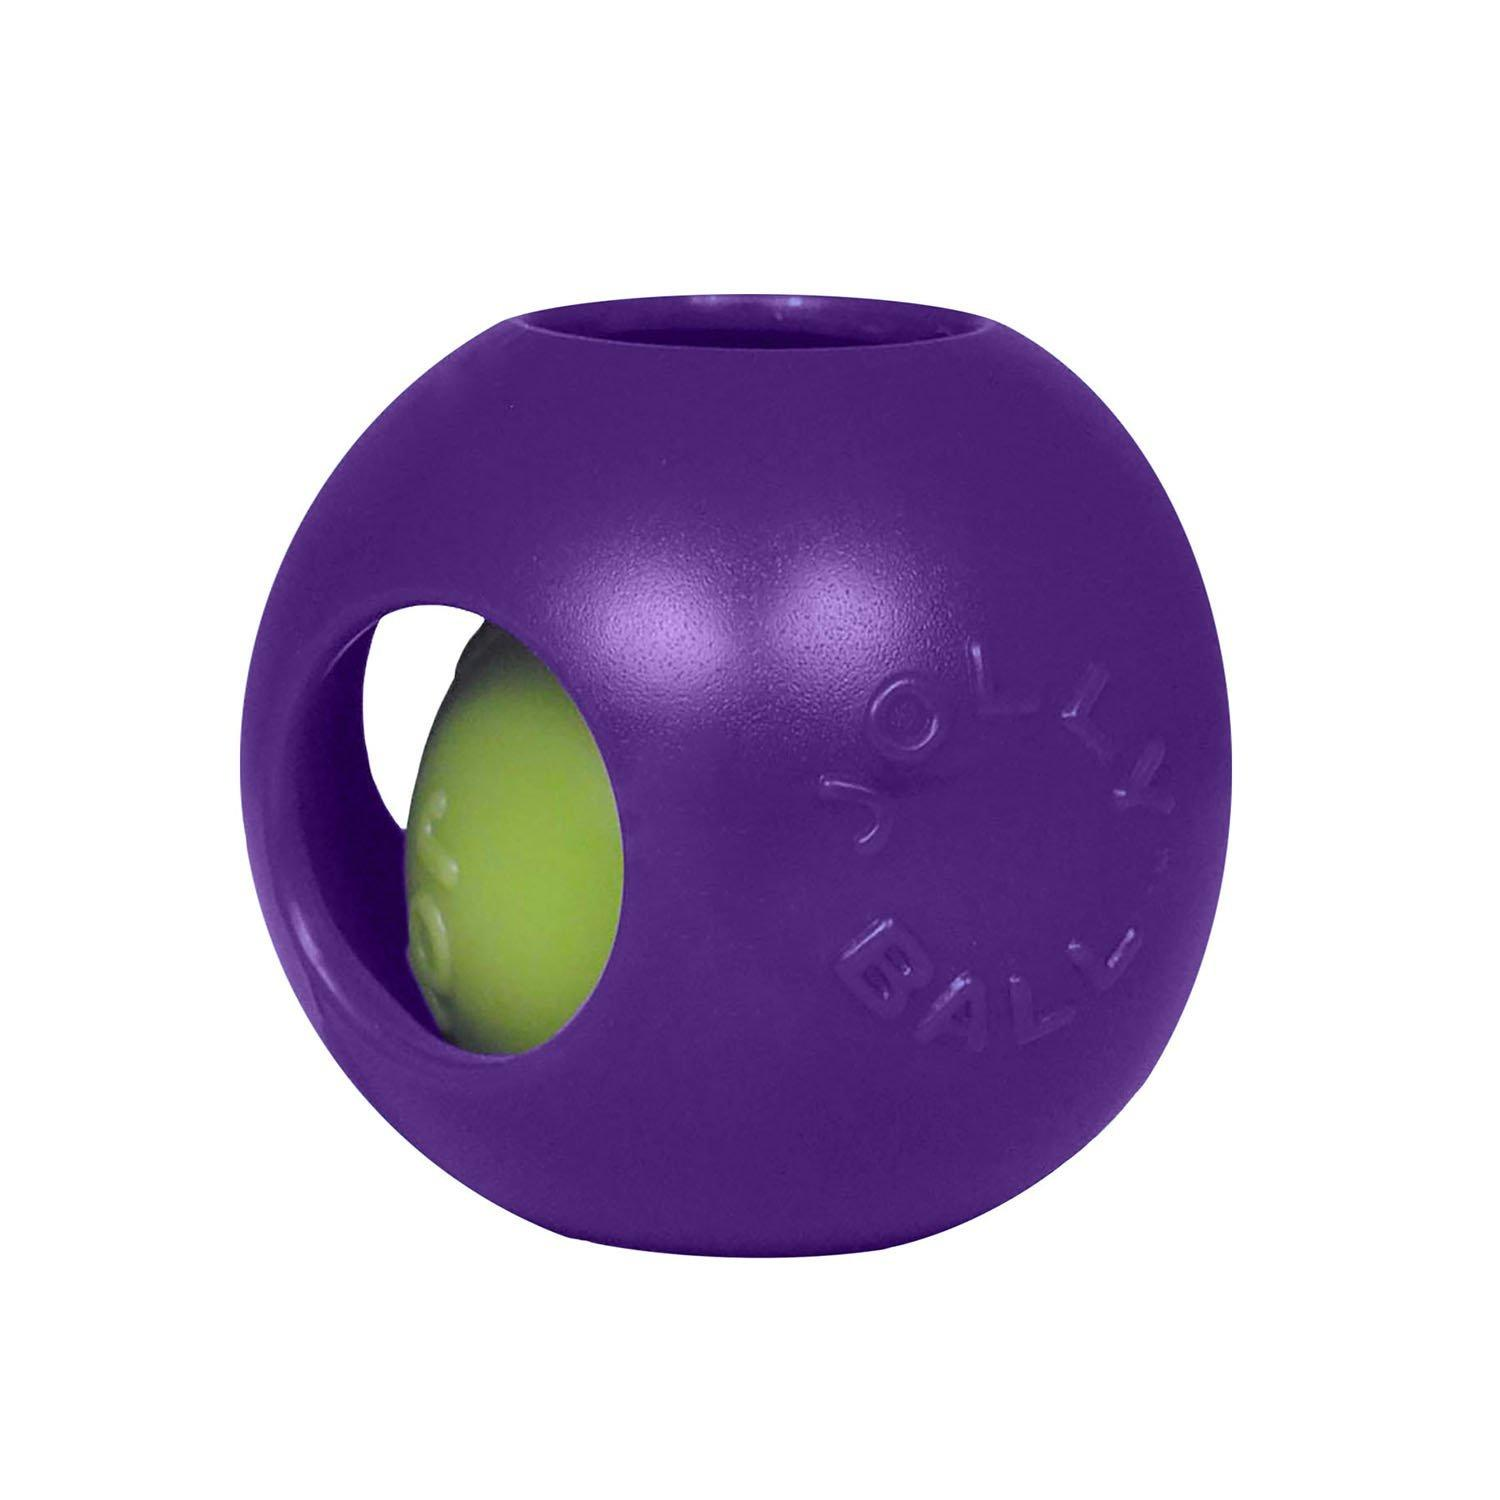 Jolly Pets Teaser Ball Dog Toy, Purple, 10-in